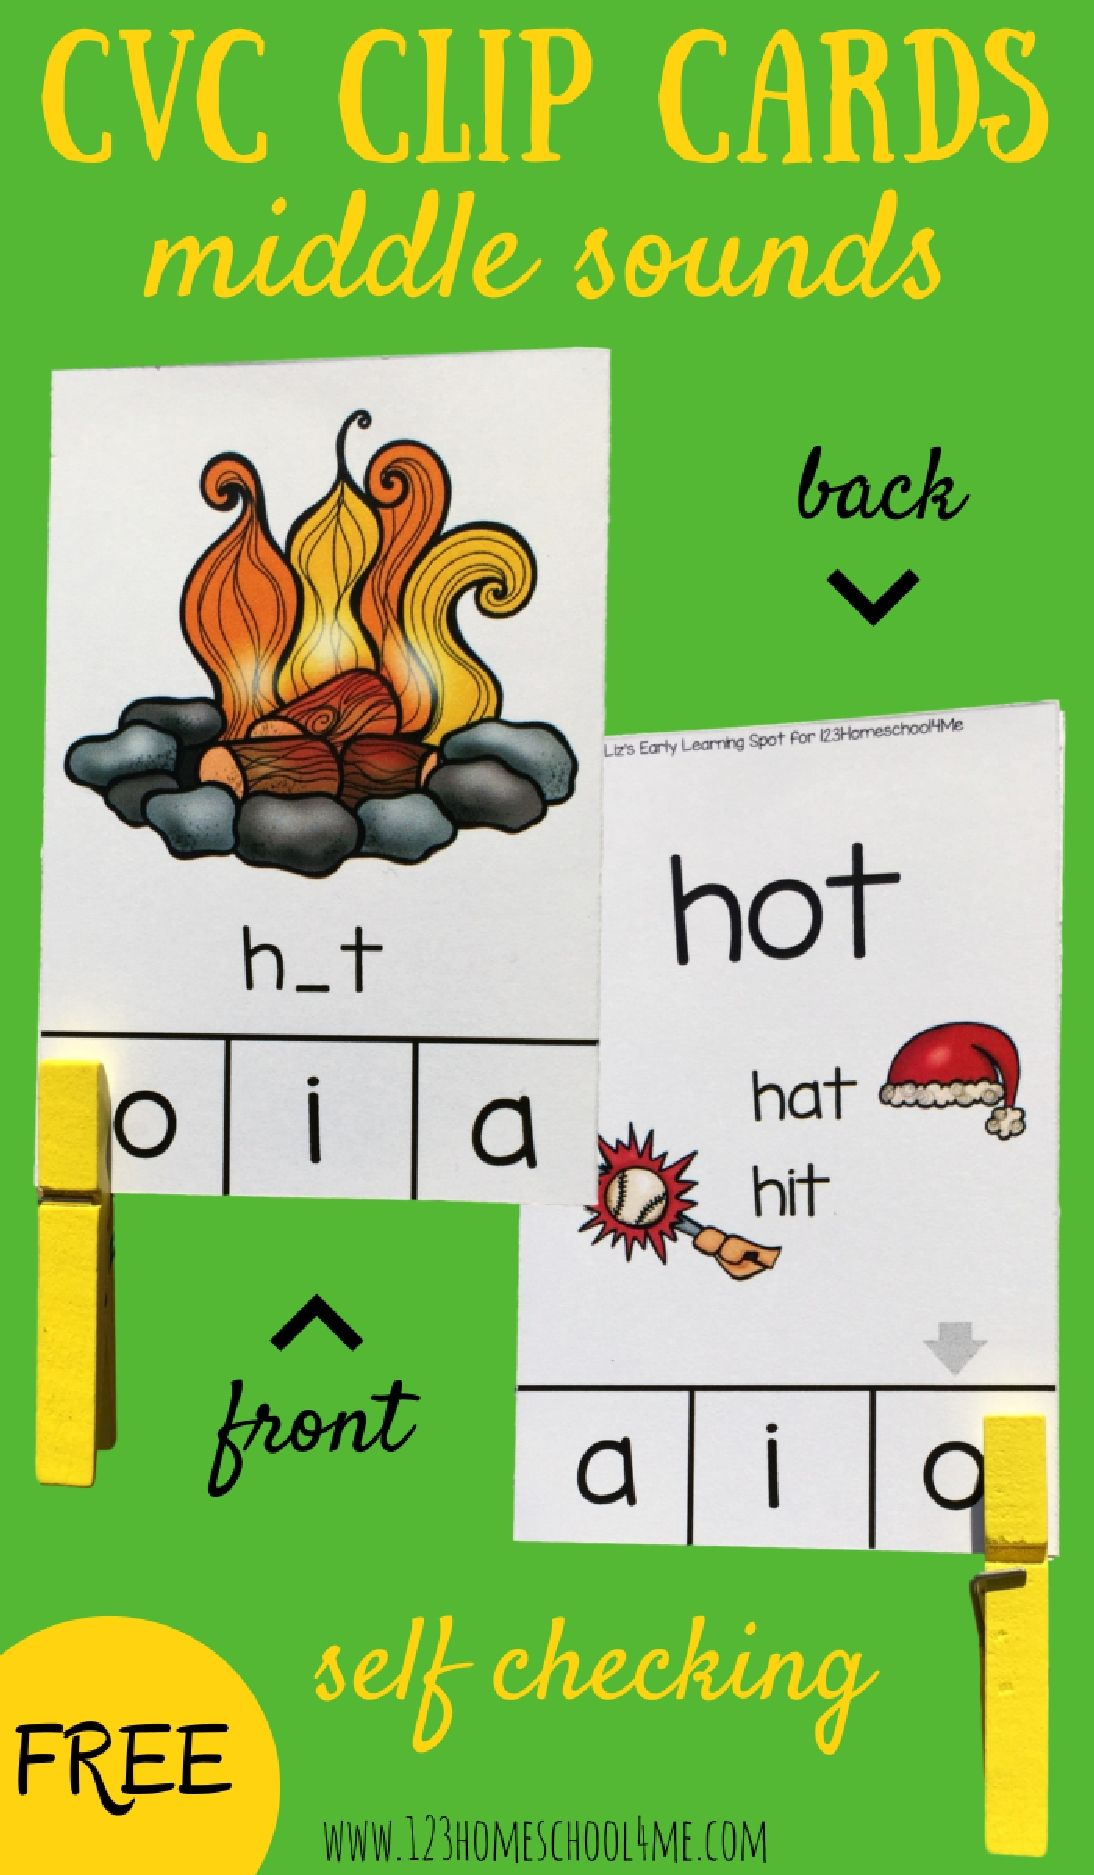 Free Cvc Words Middle Sounds Clip Cards